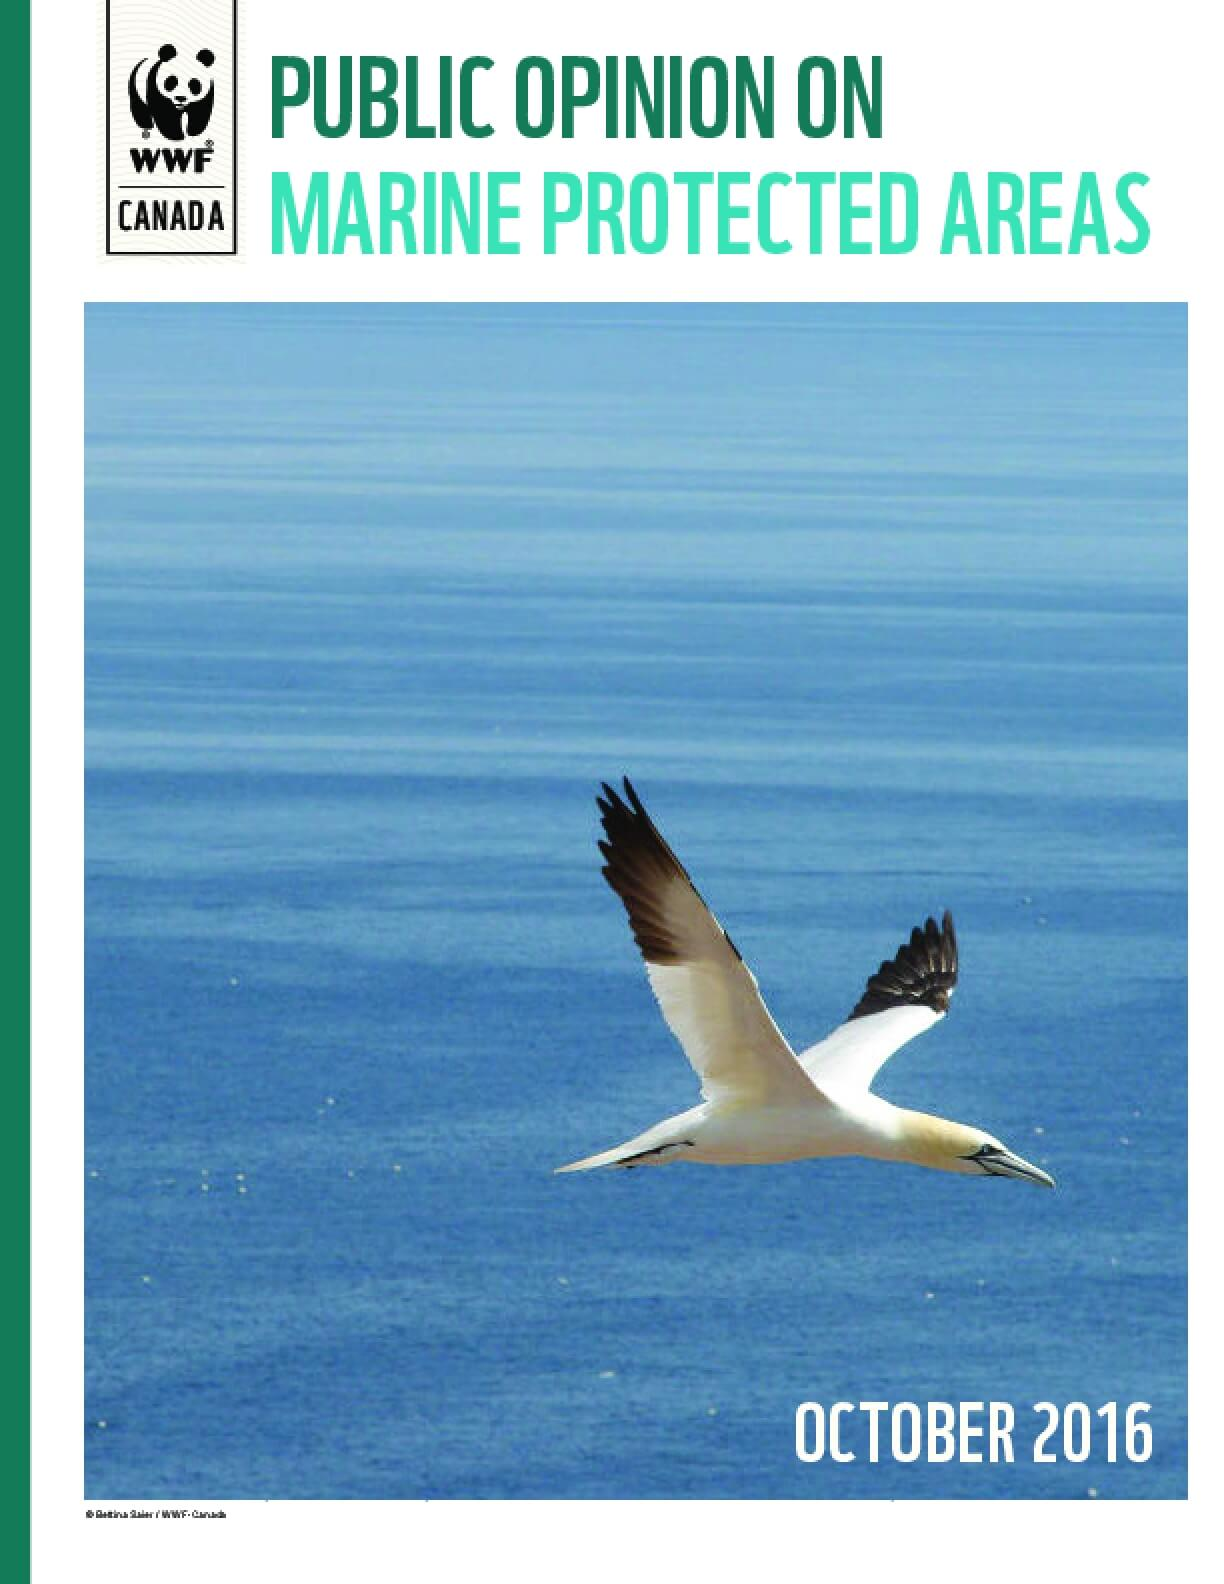 Public Opinion on Marine Protected Areas